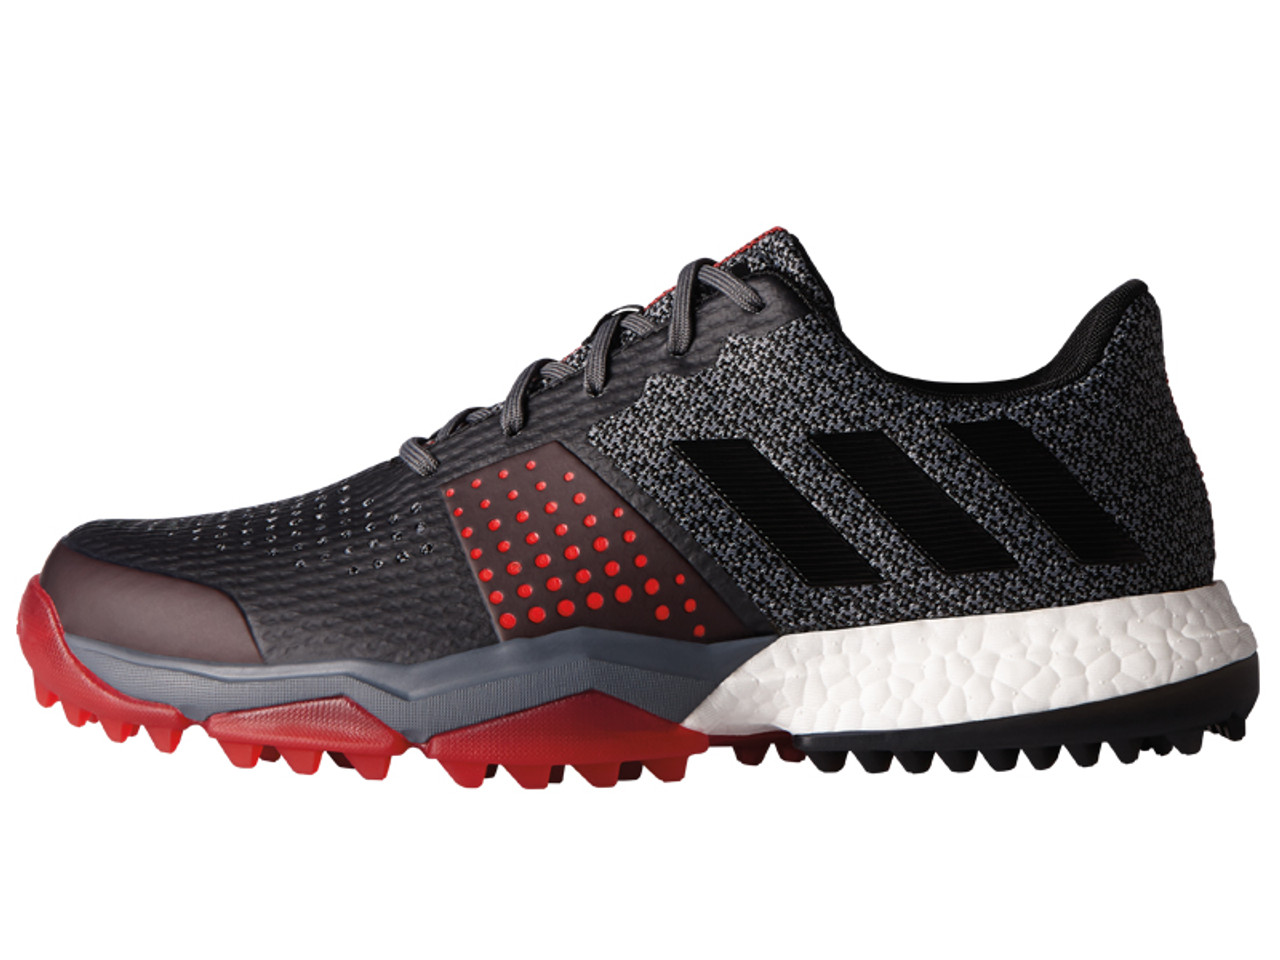 promo codes best choice cheap price Adidas Adipower S Boost 3 Golf Shoes - Onix/C Black/Scarlet